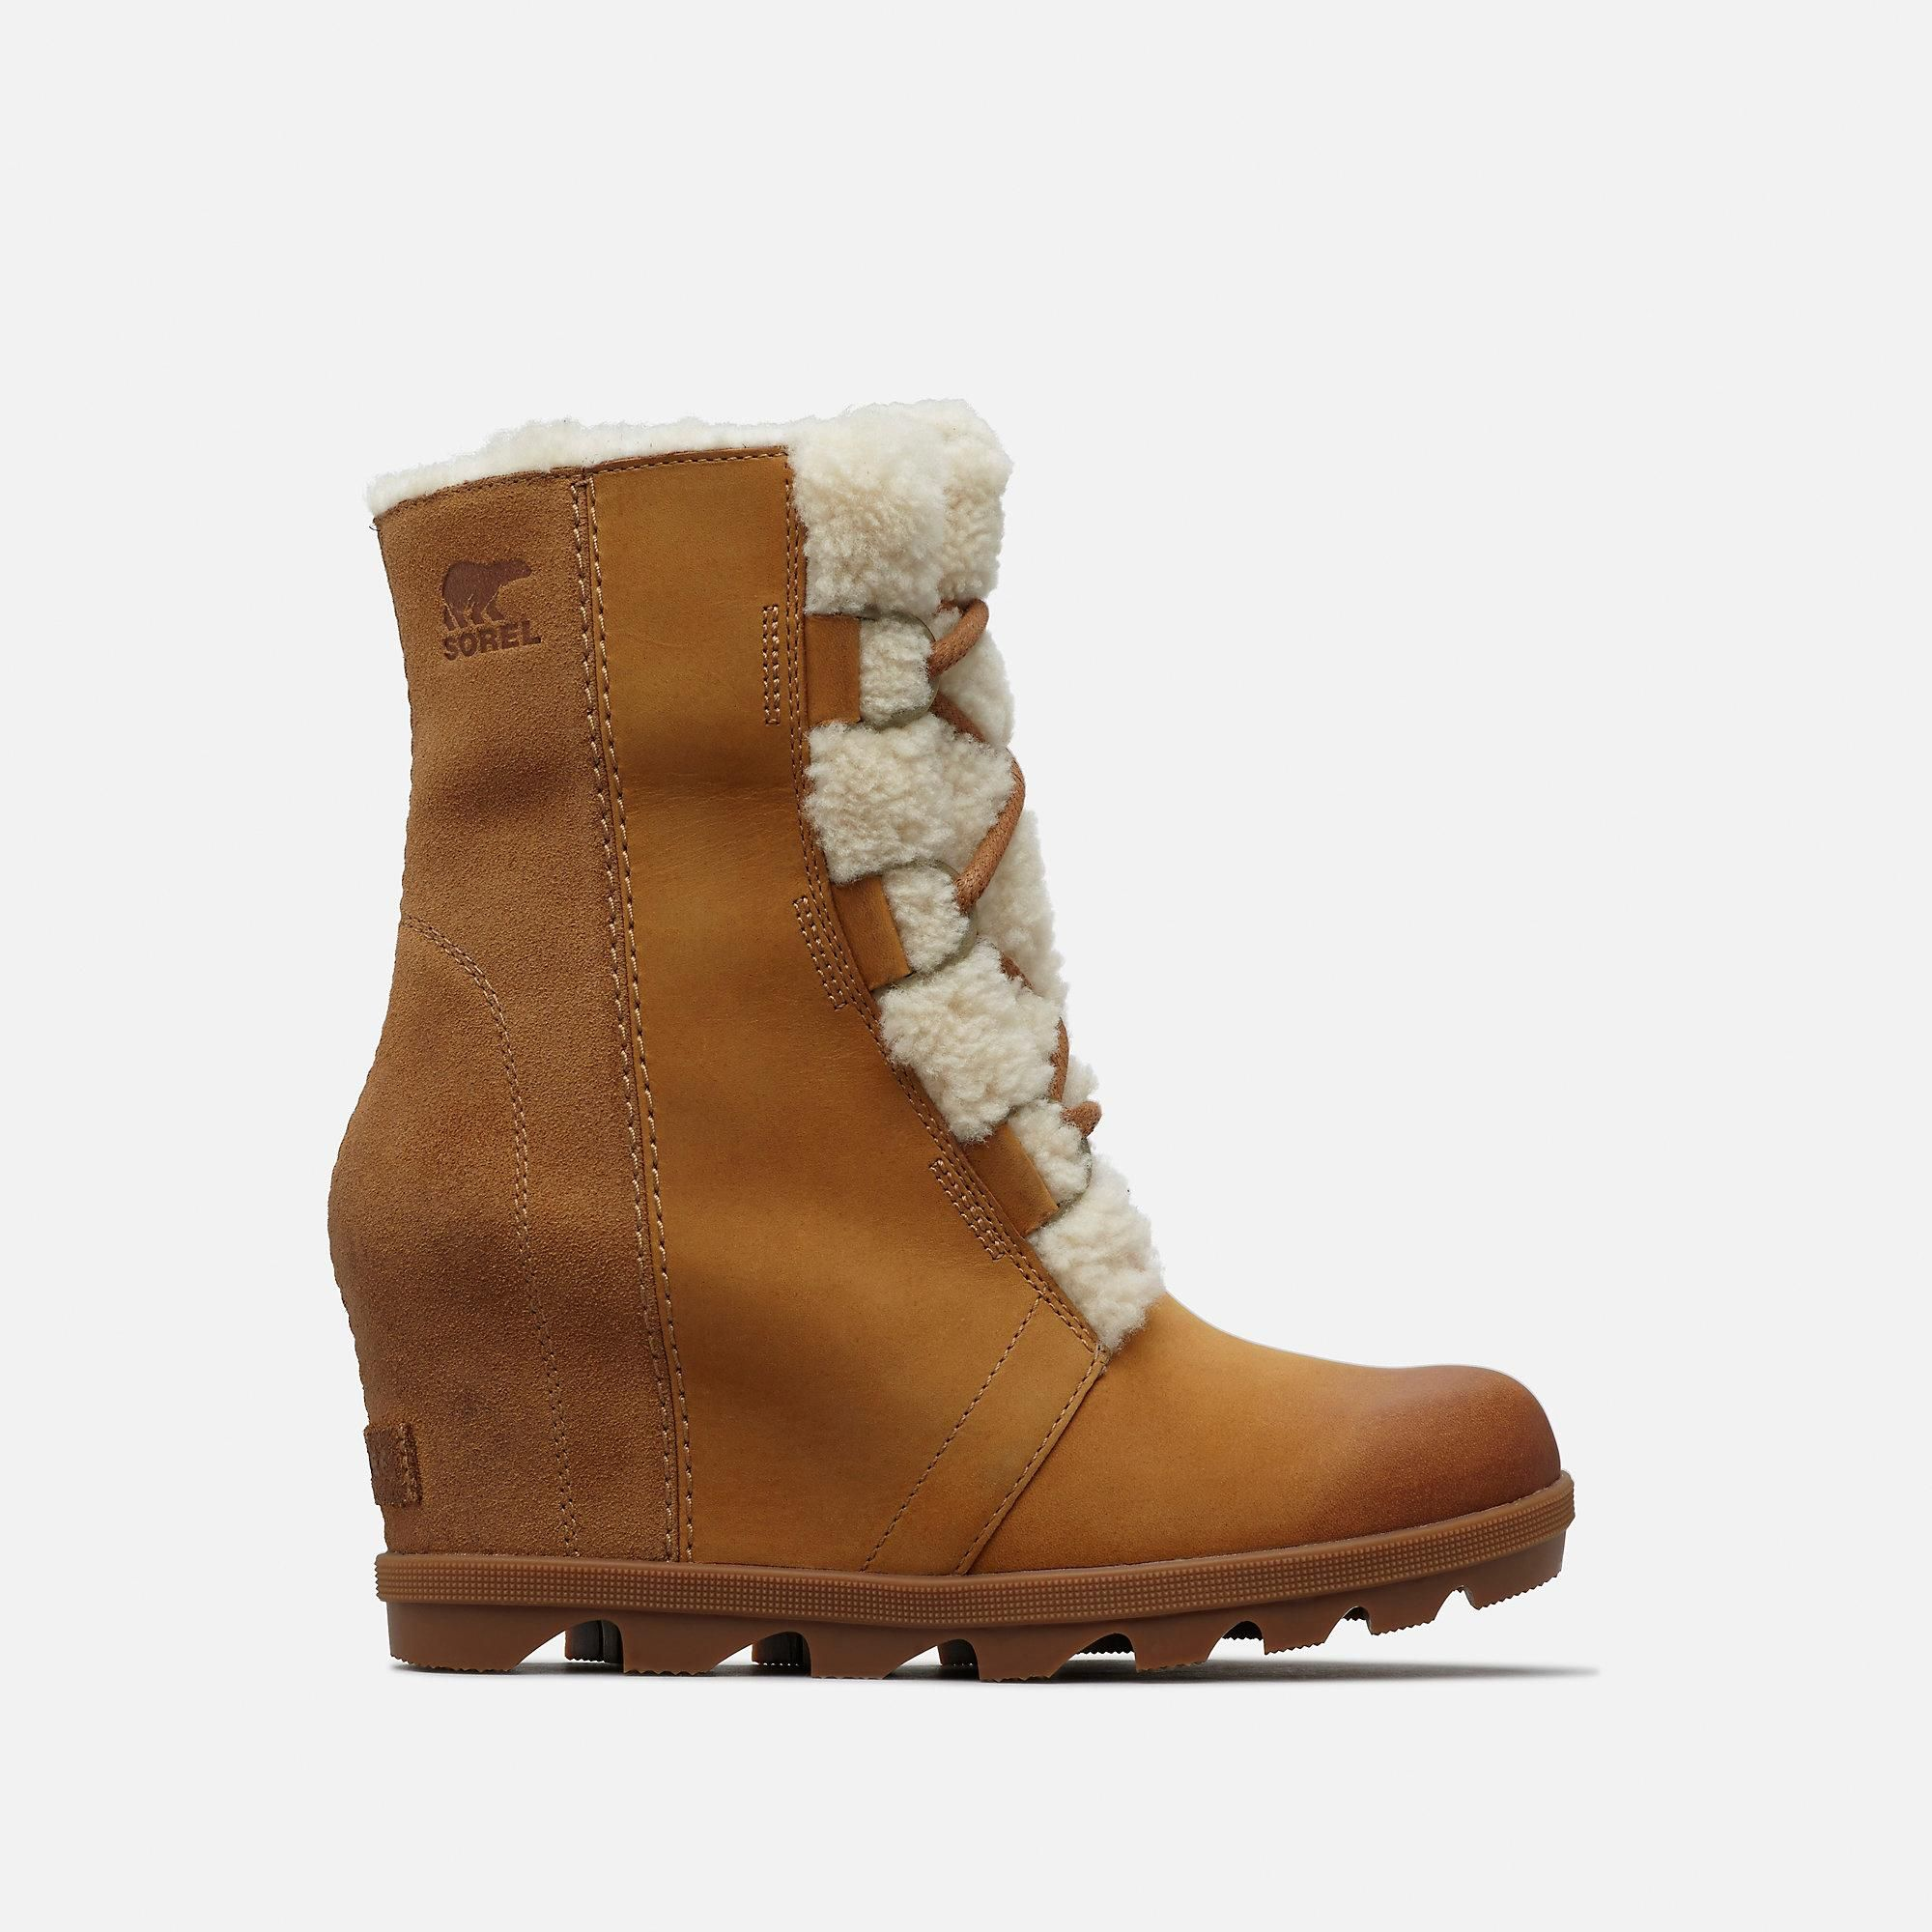 ace796a8a0 Women S Fashion From The 1950S #WomenSFashionIn1968 Sorel Wedge Boots, Wedge  Snow Boots,